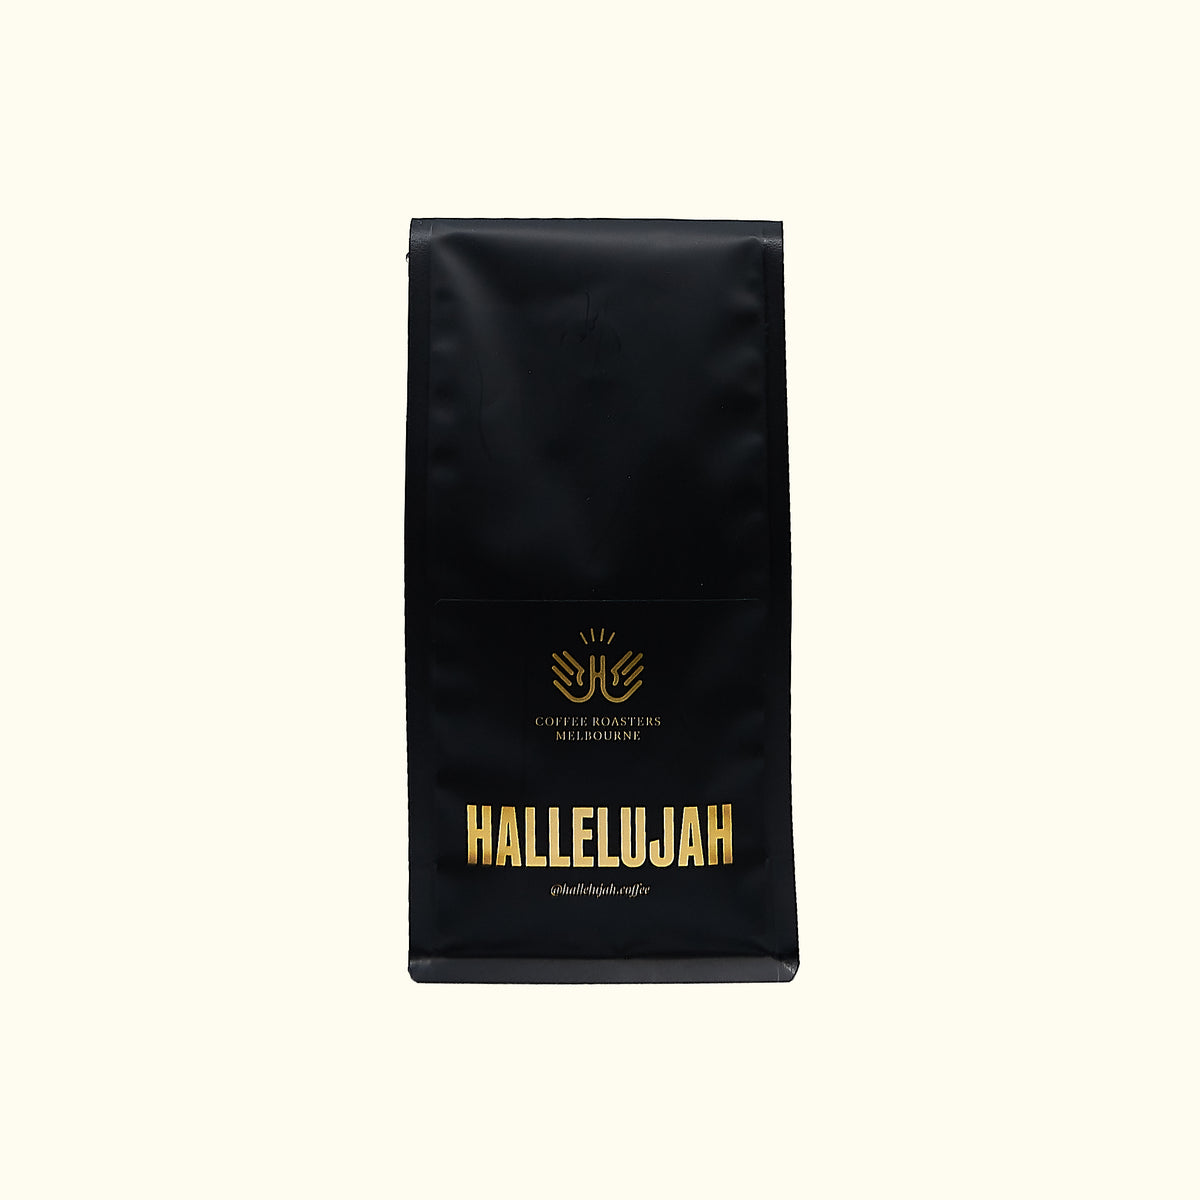 Hallelujah Coffees' Believe Espresso